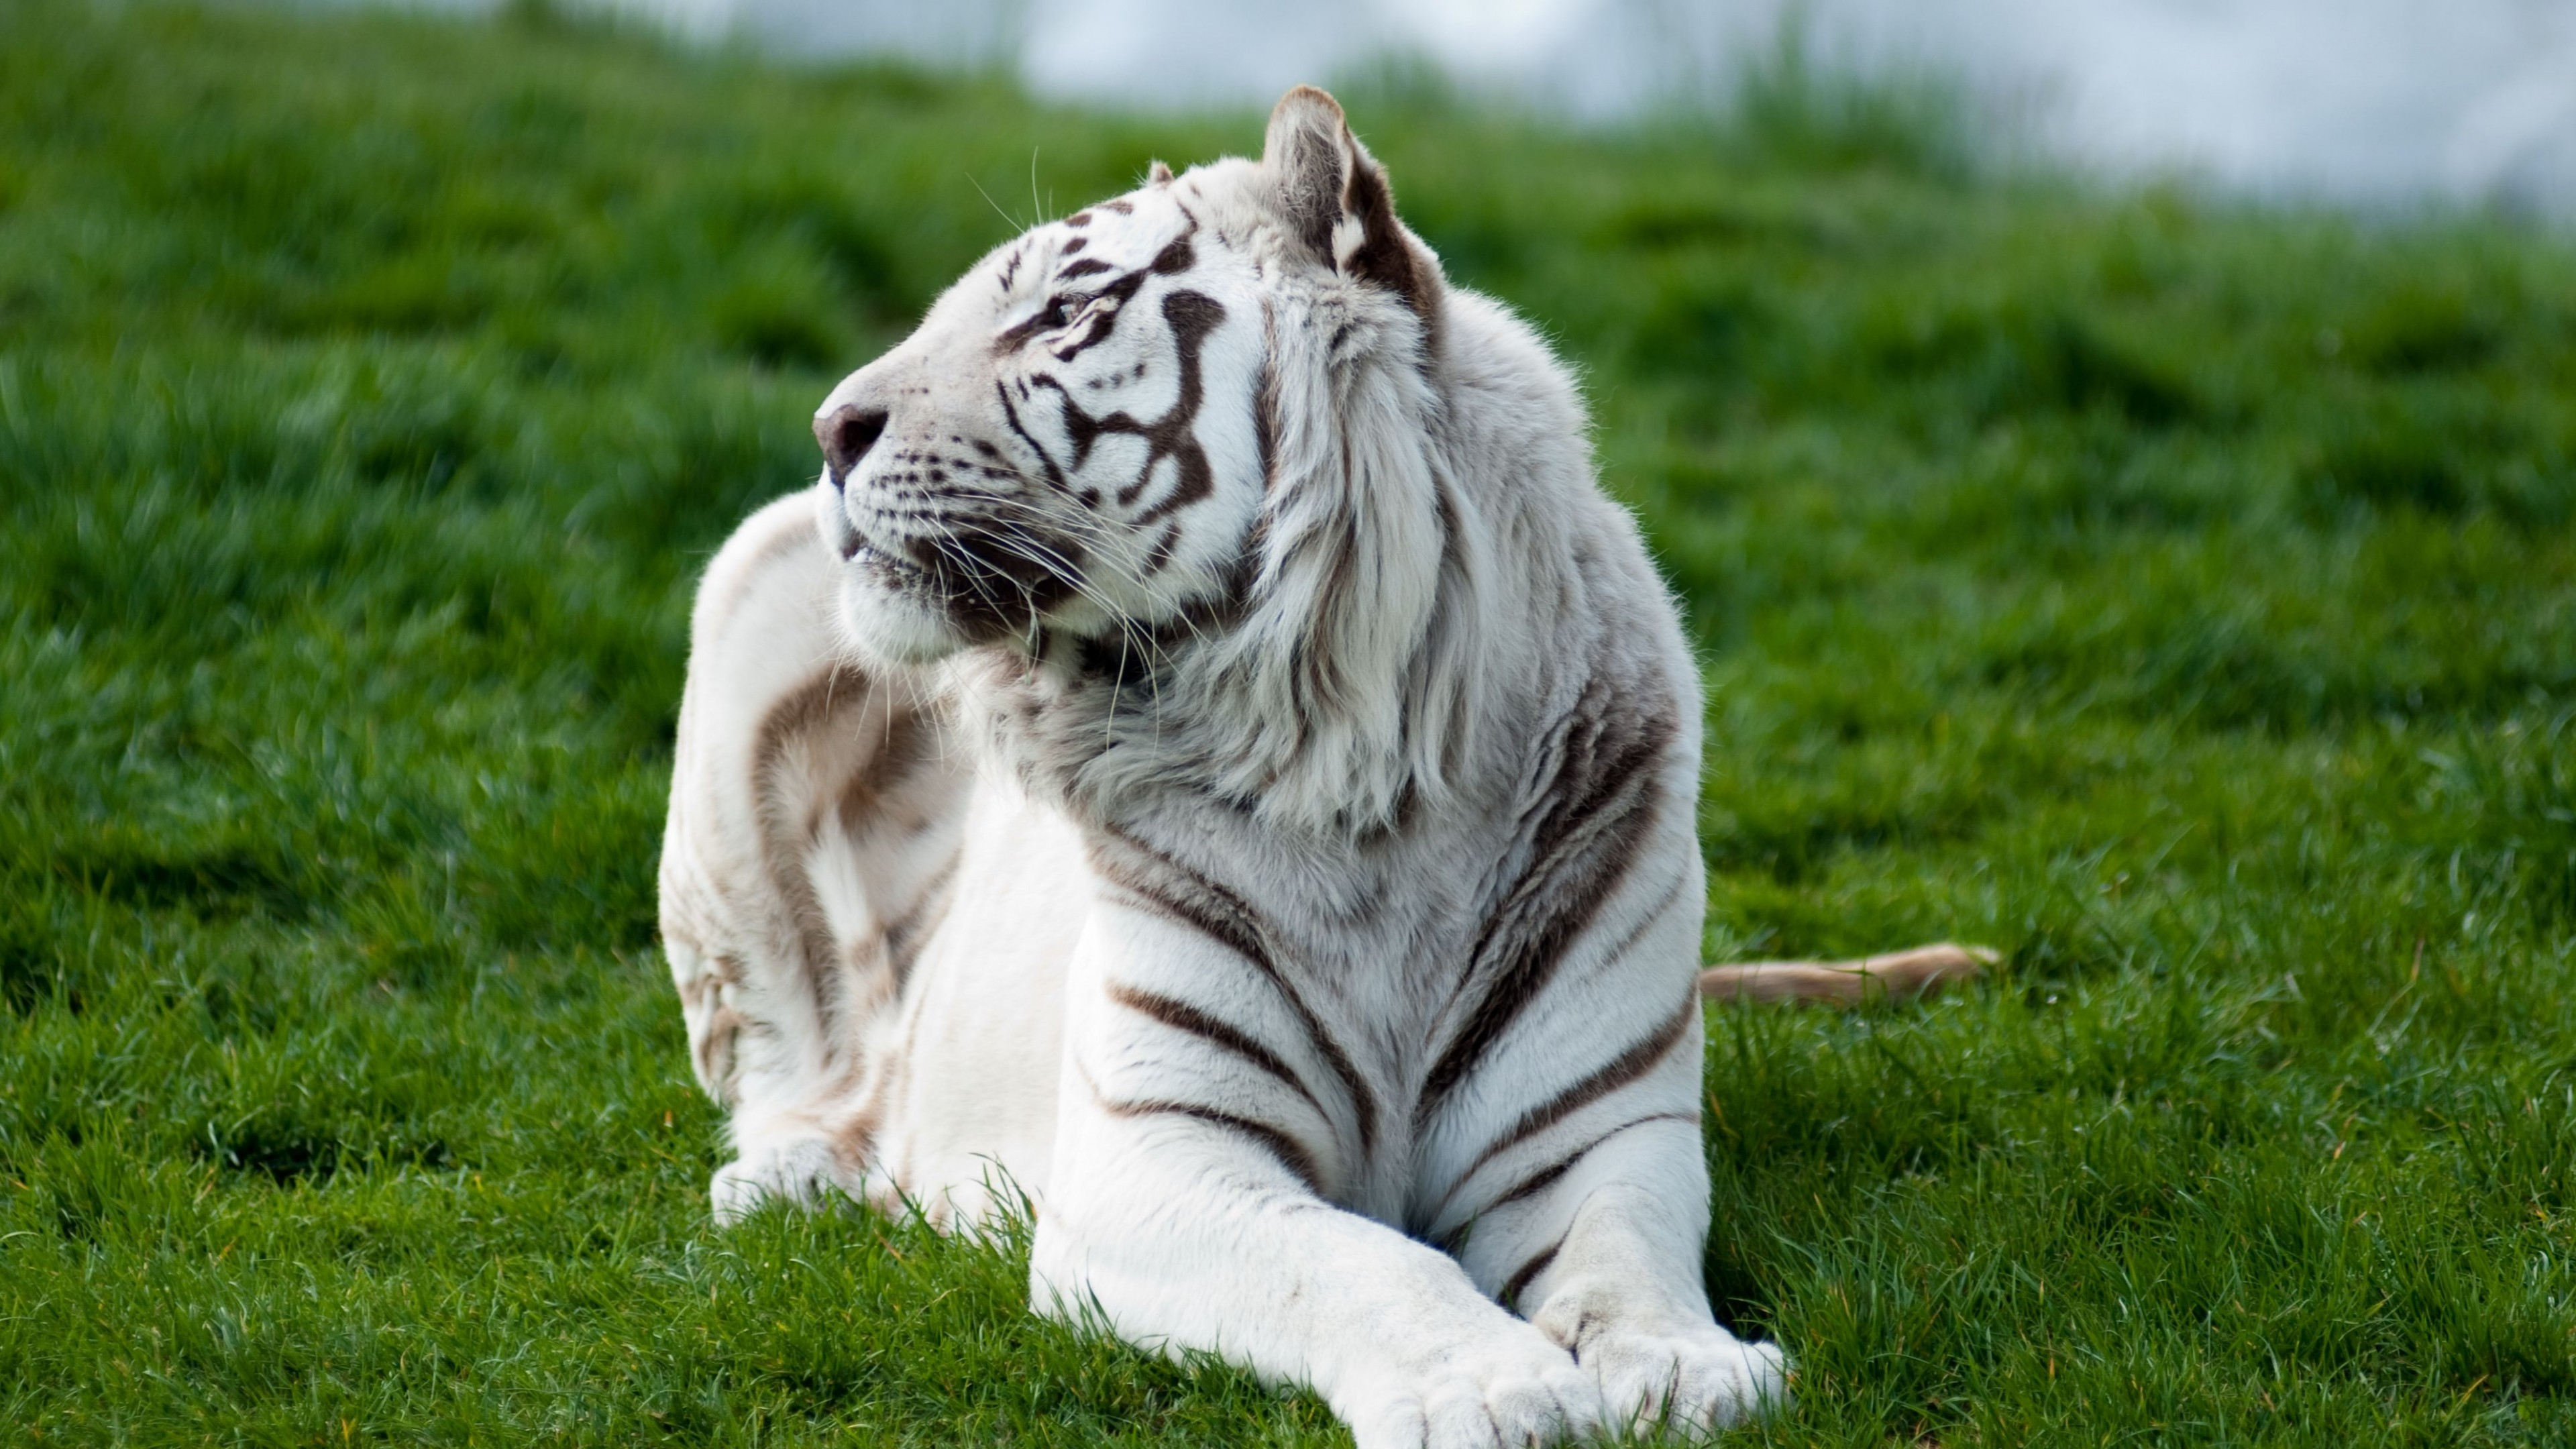 tiger albino 2 4k 1542237821 - Tiger Albino 2 4k - tiger wallpapers 4k, predator wallpapers, king wallpapers, grass wallpapers, animals wallpapers